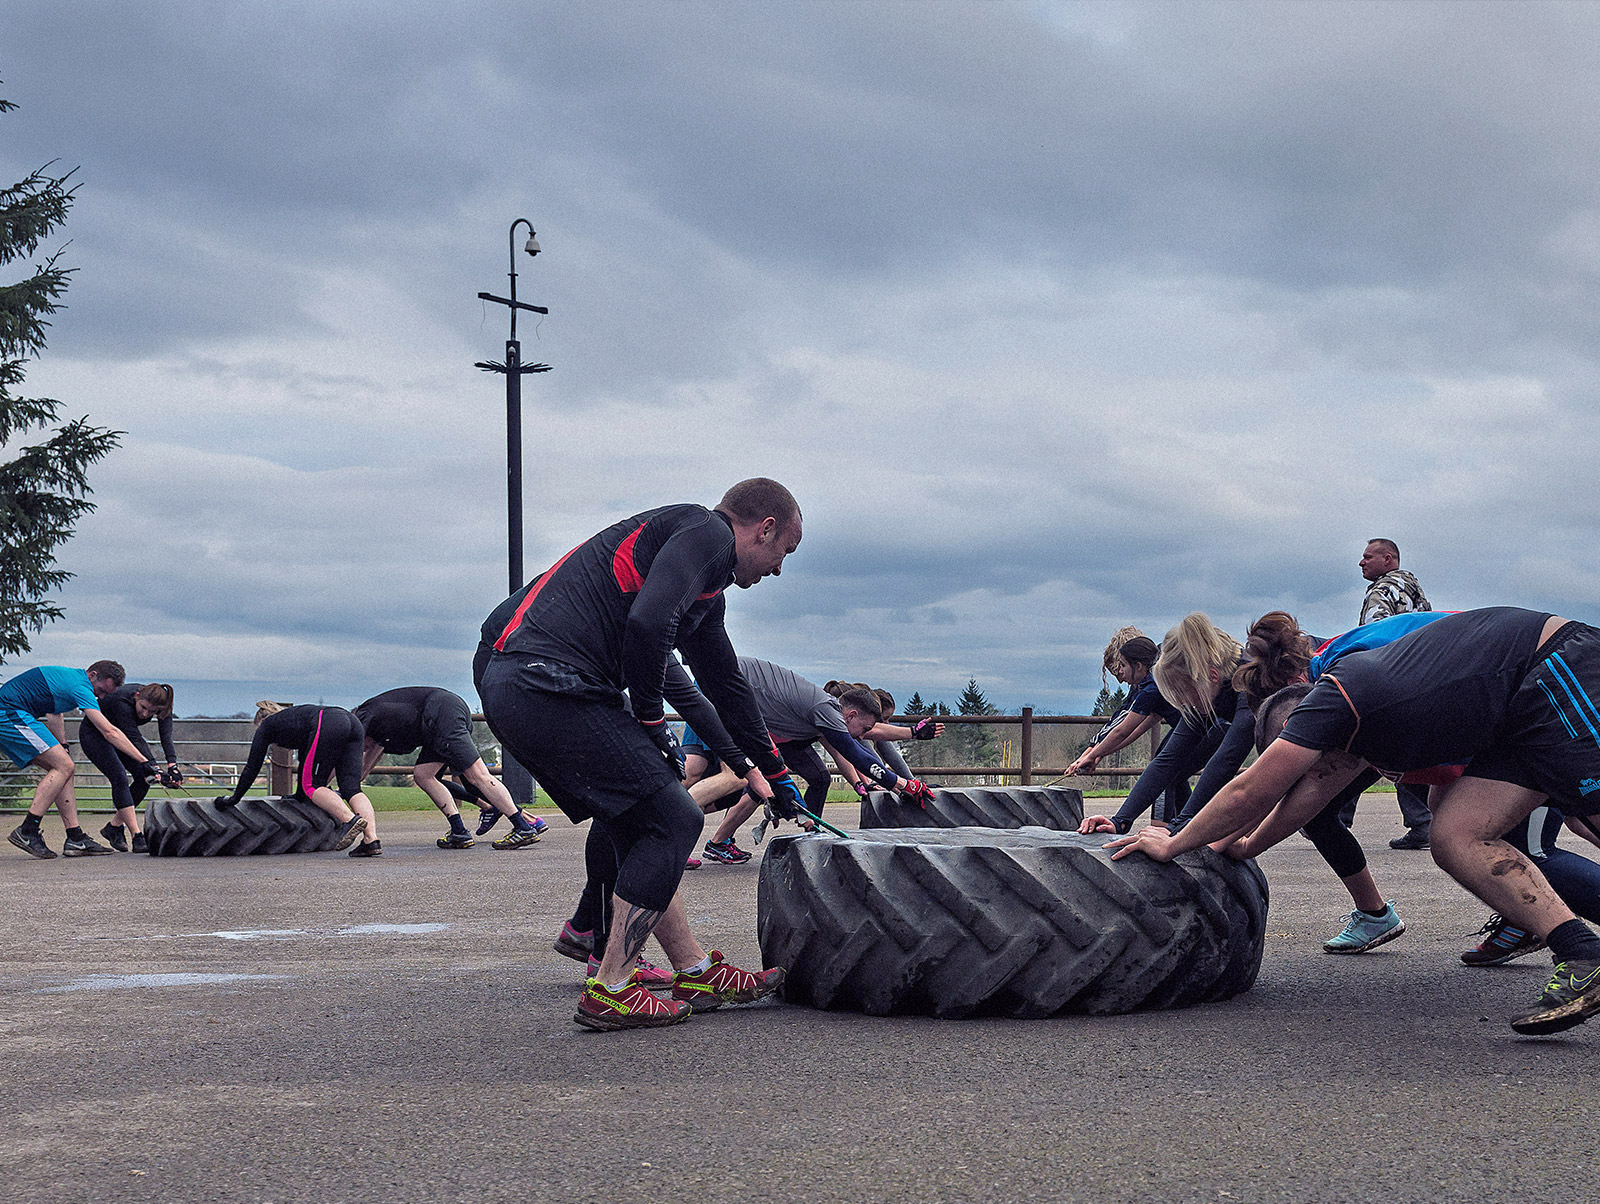 Military Fitness Training - Get fitter, stronger, faster while